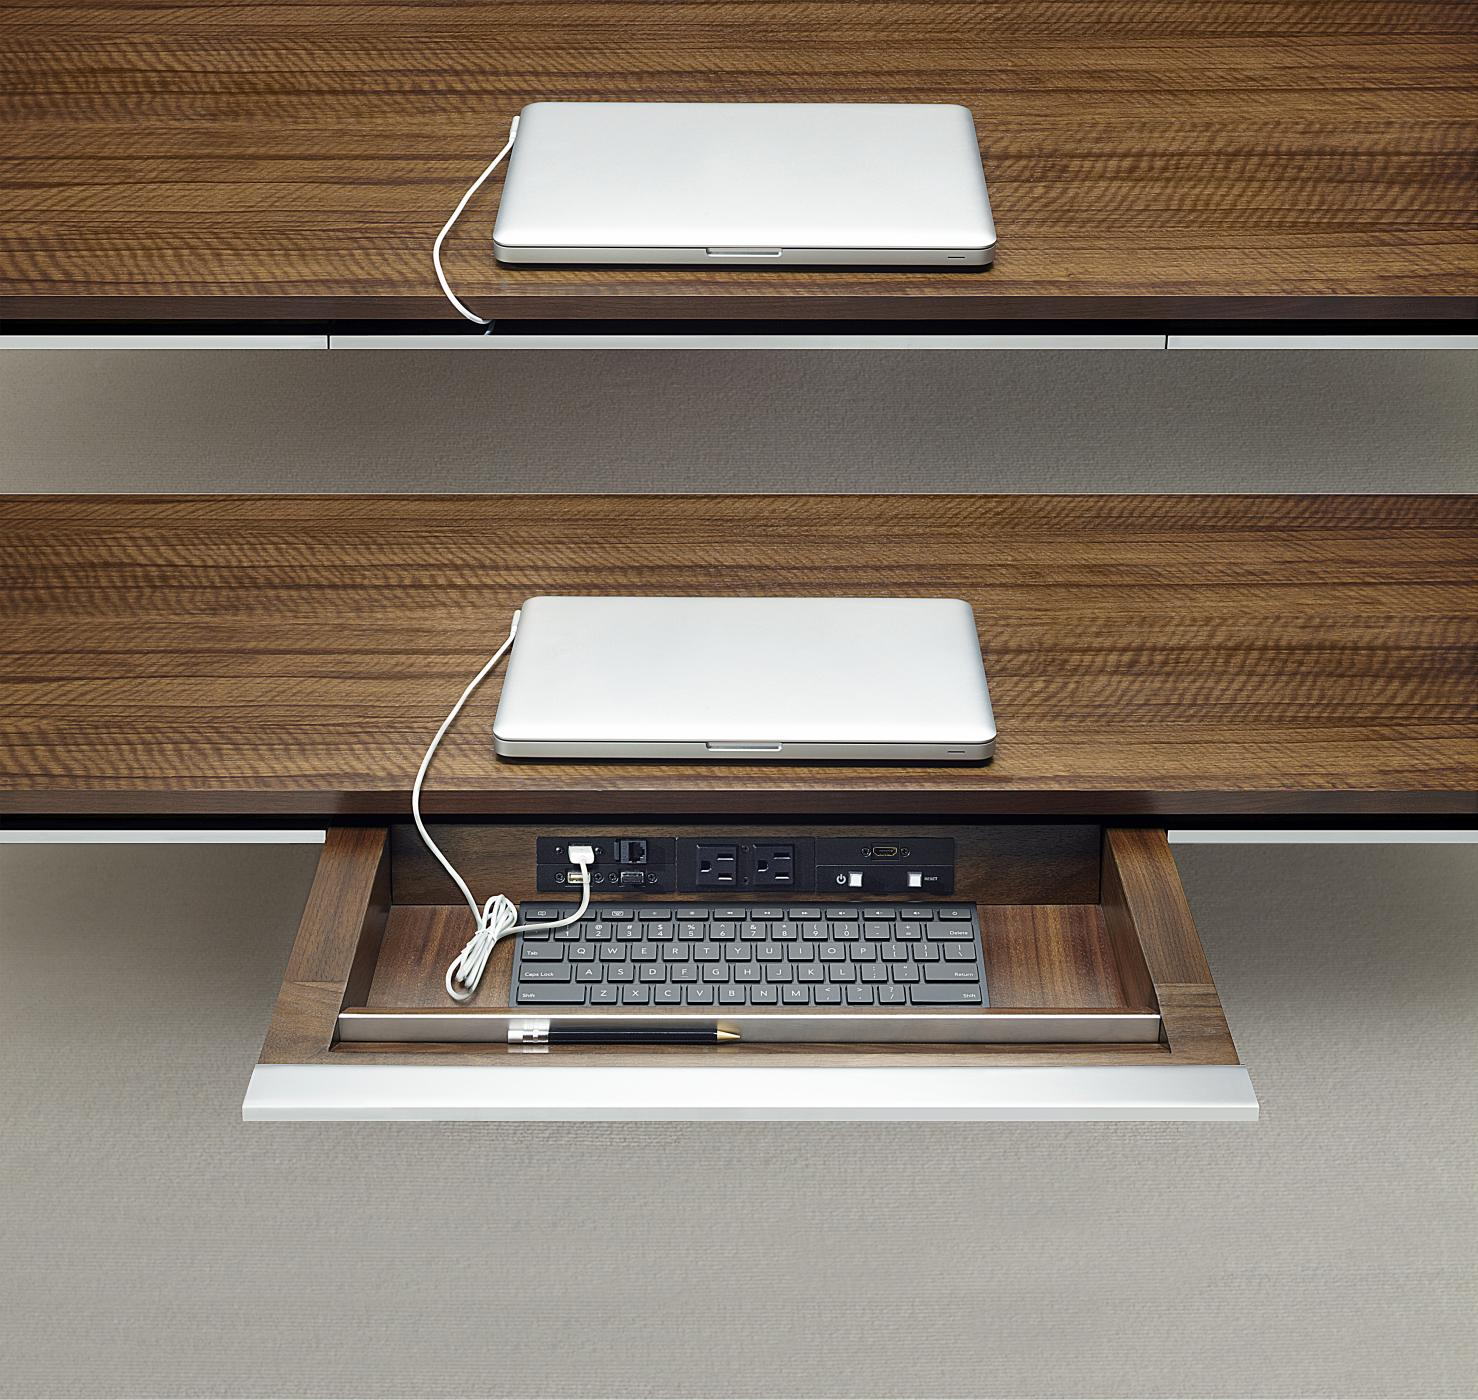 Comfortably access technology with Mesa's innovative, concealed drawers.